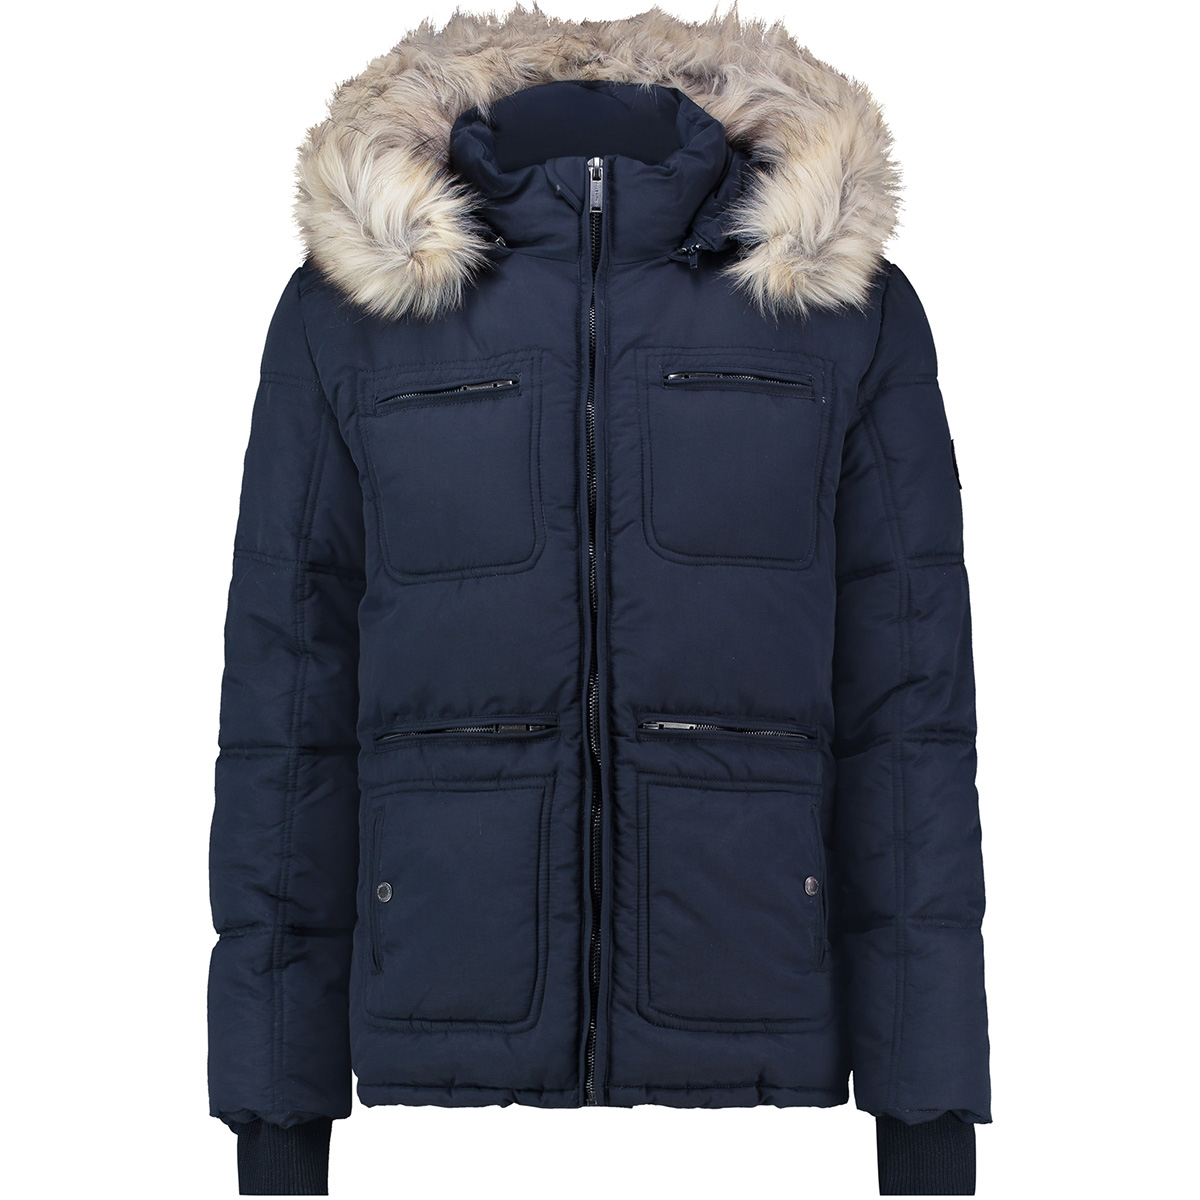 jacket expedition mu 12 1009 haze & finn jas dark navy